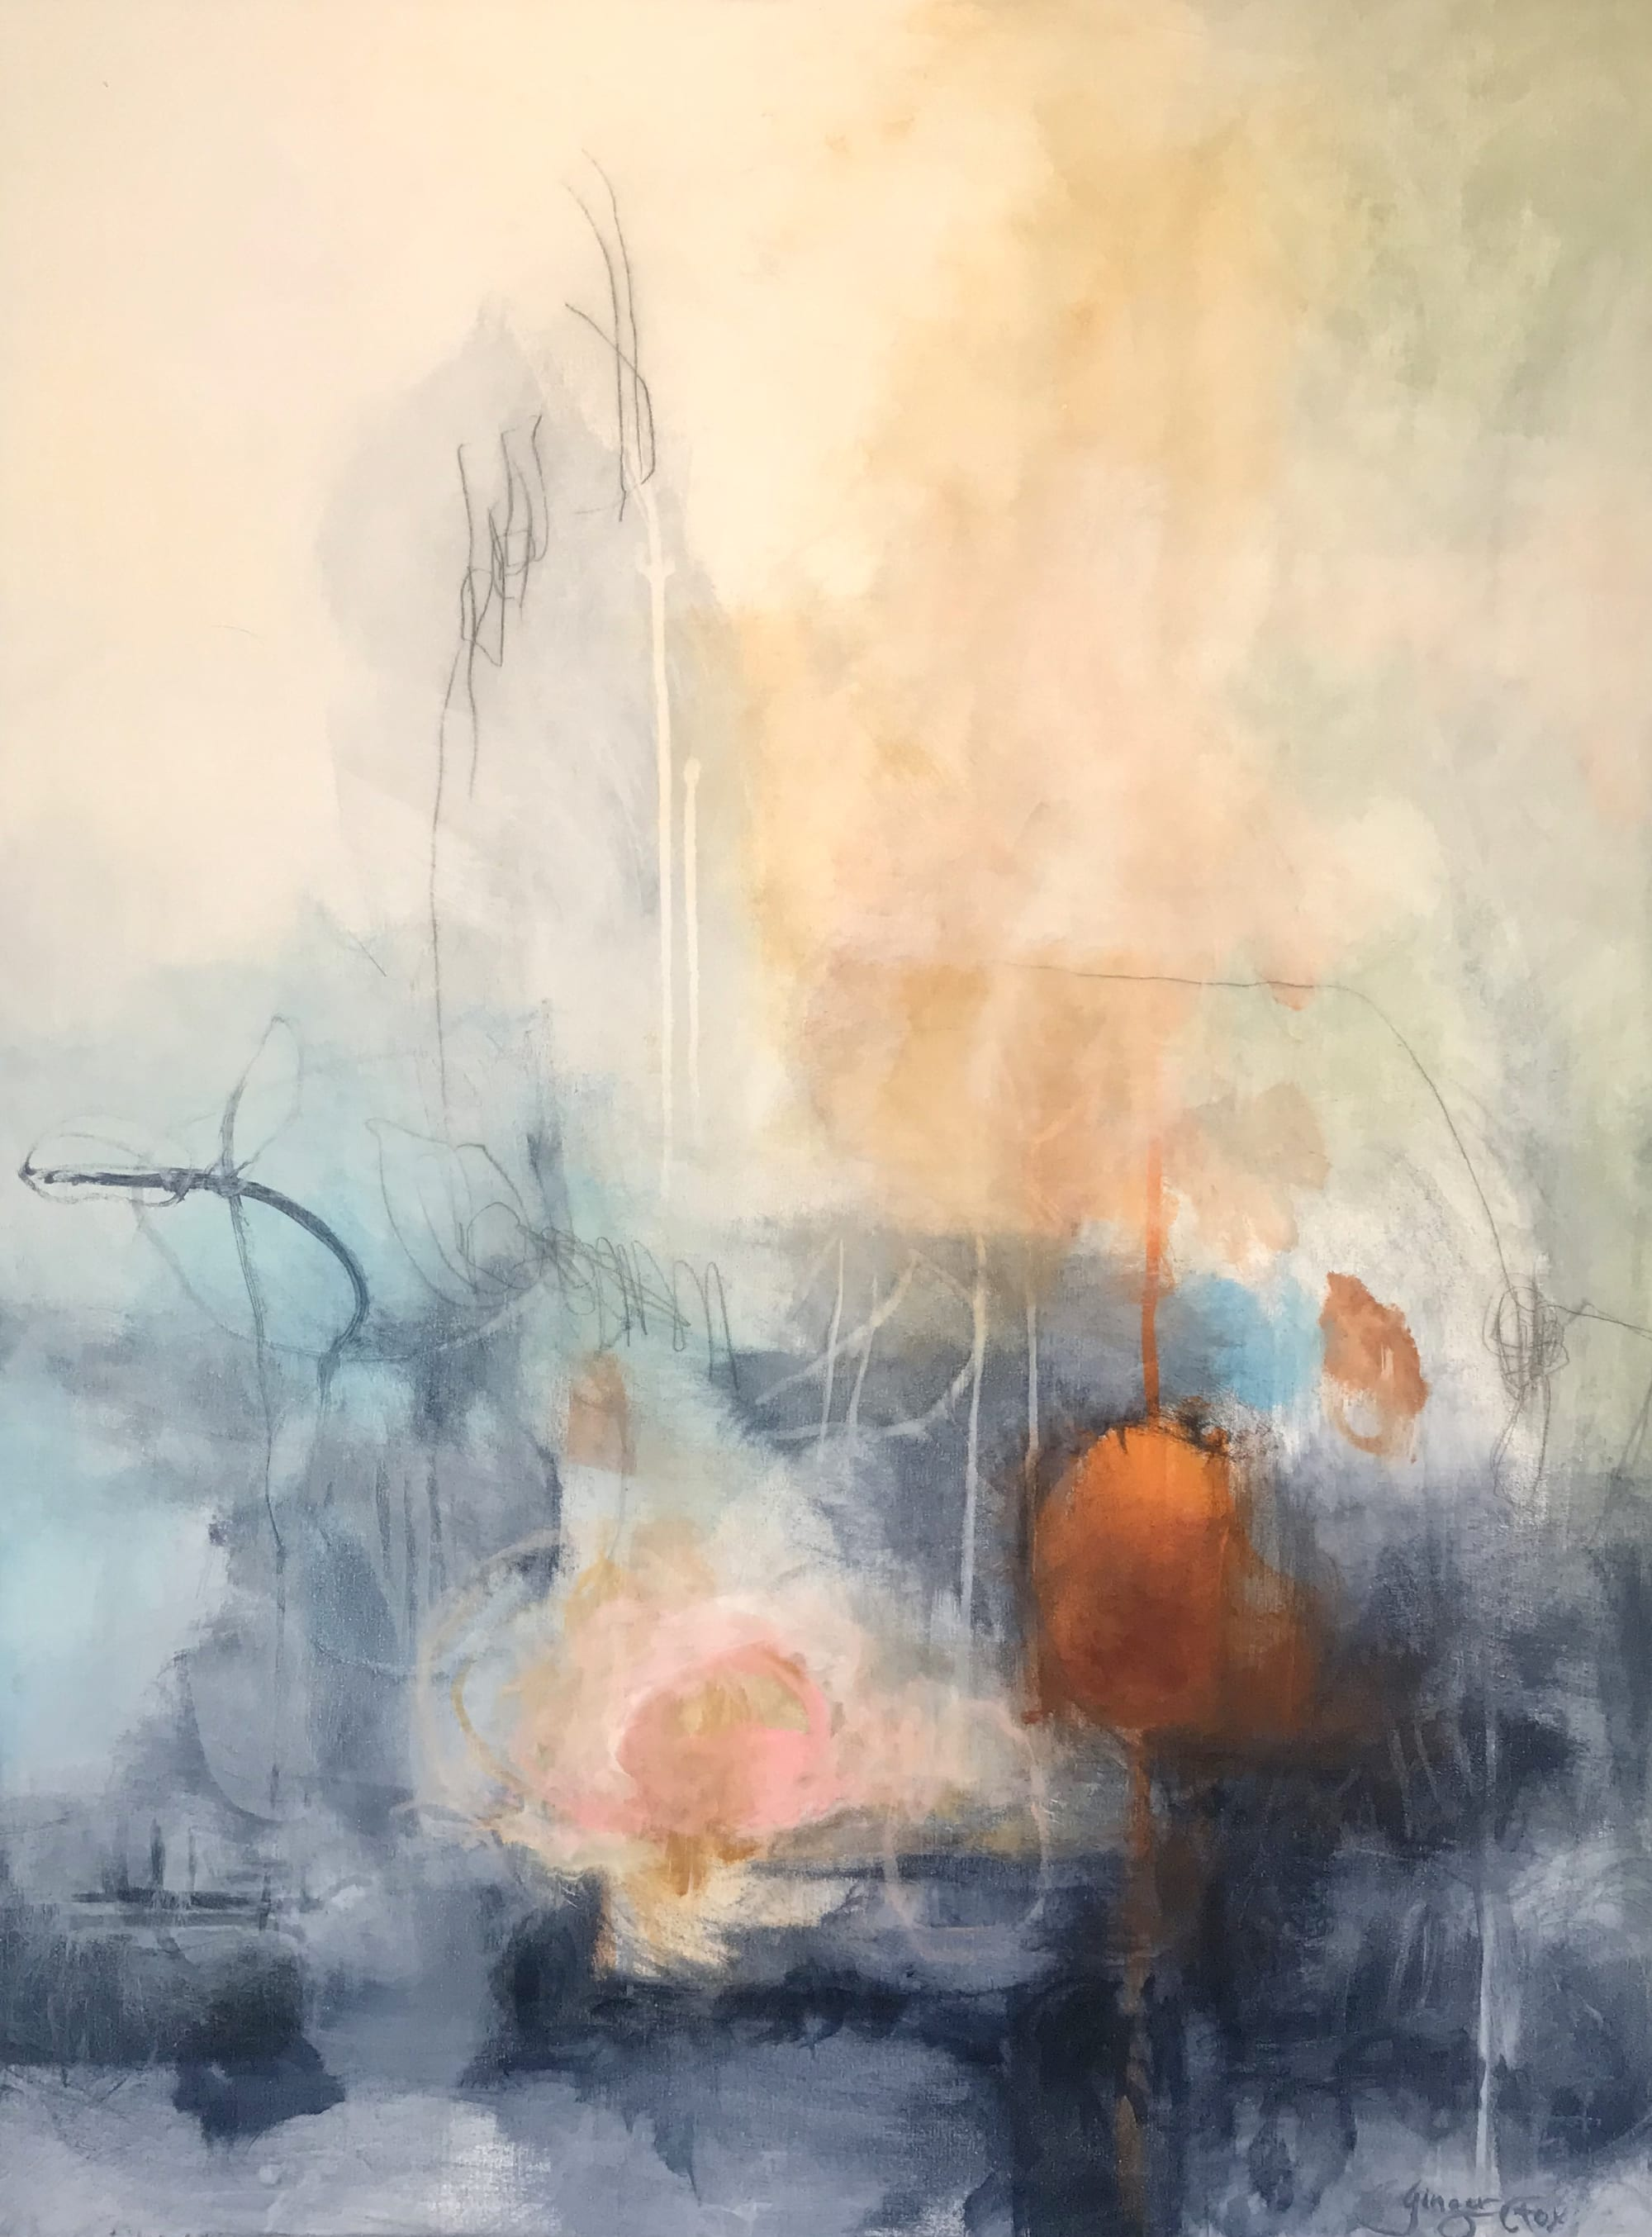 Paintings by Ginger Fox Gallery seen at Ginger Fox Gallery, Dallas - Expressive Abstracts